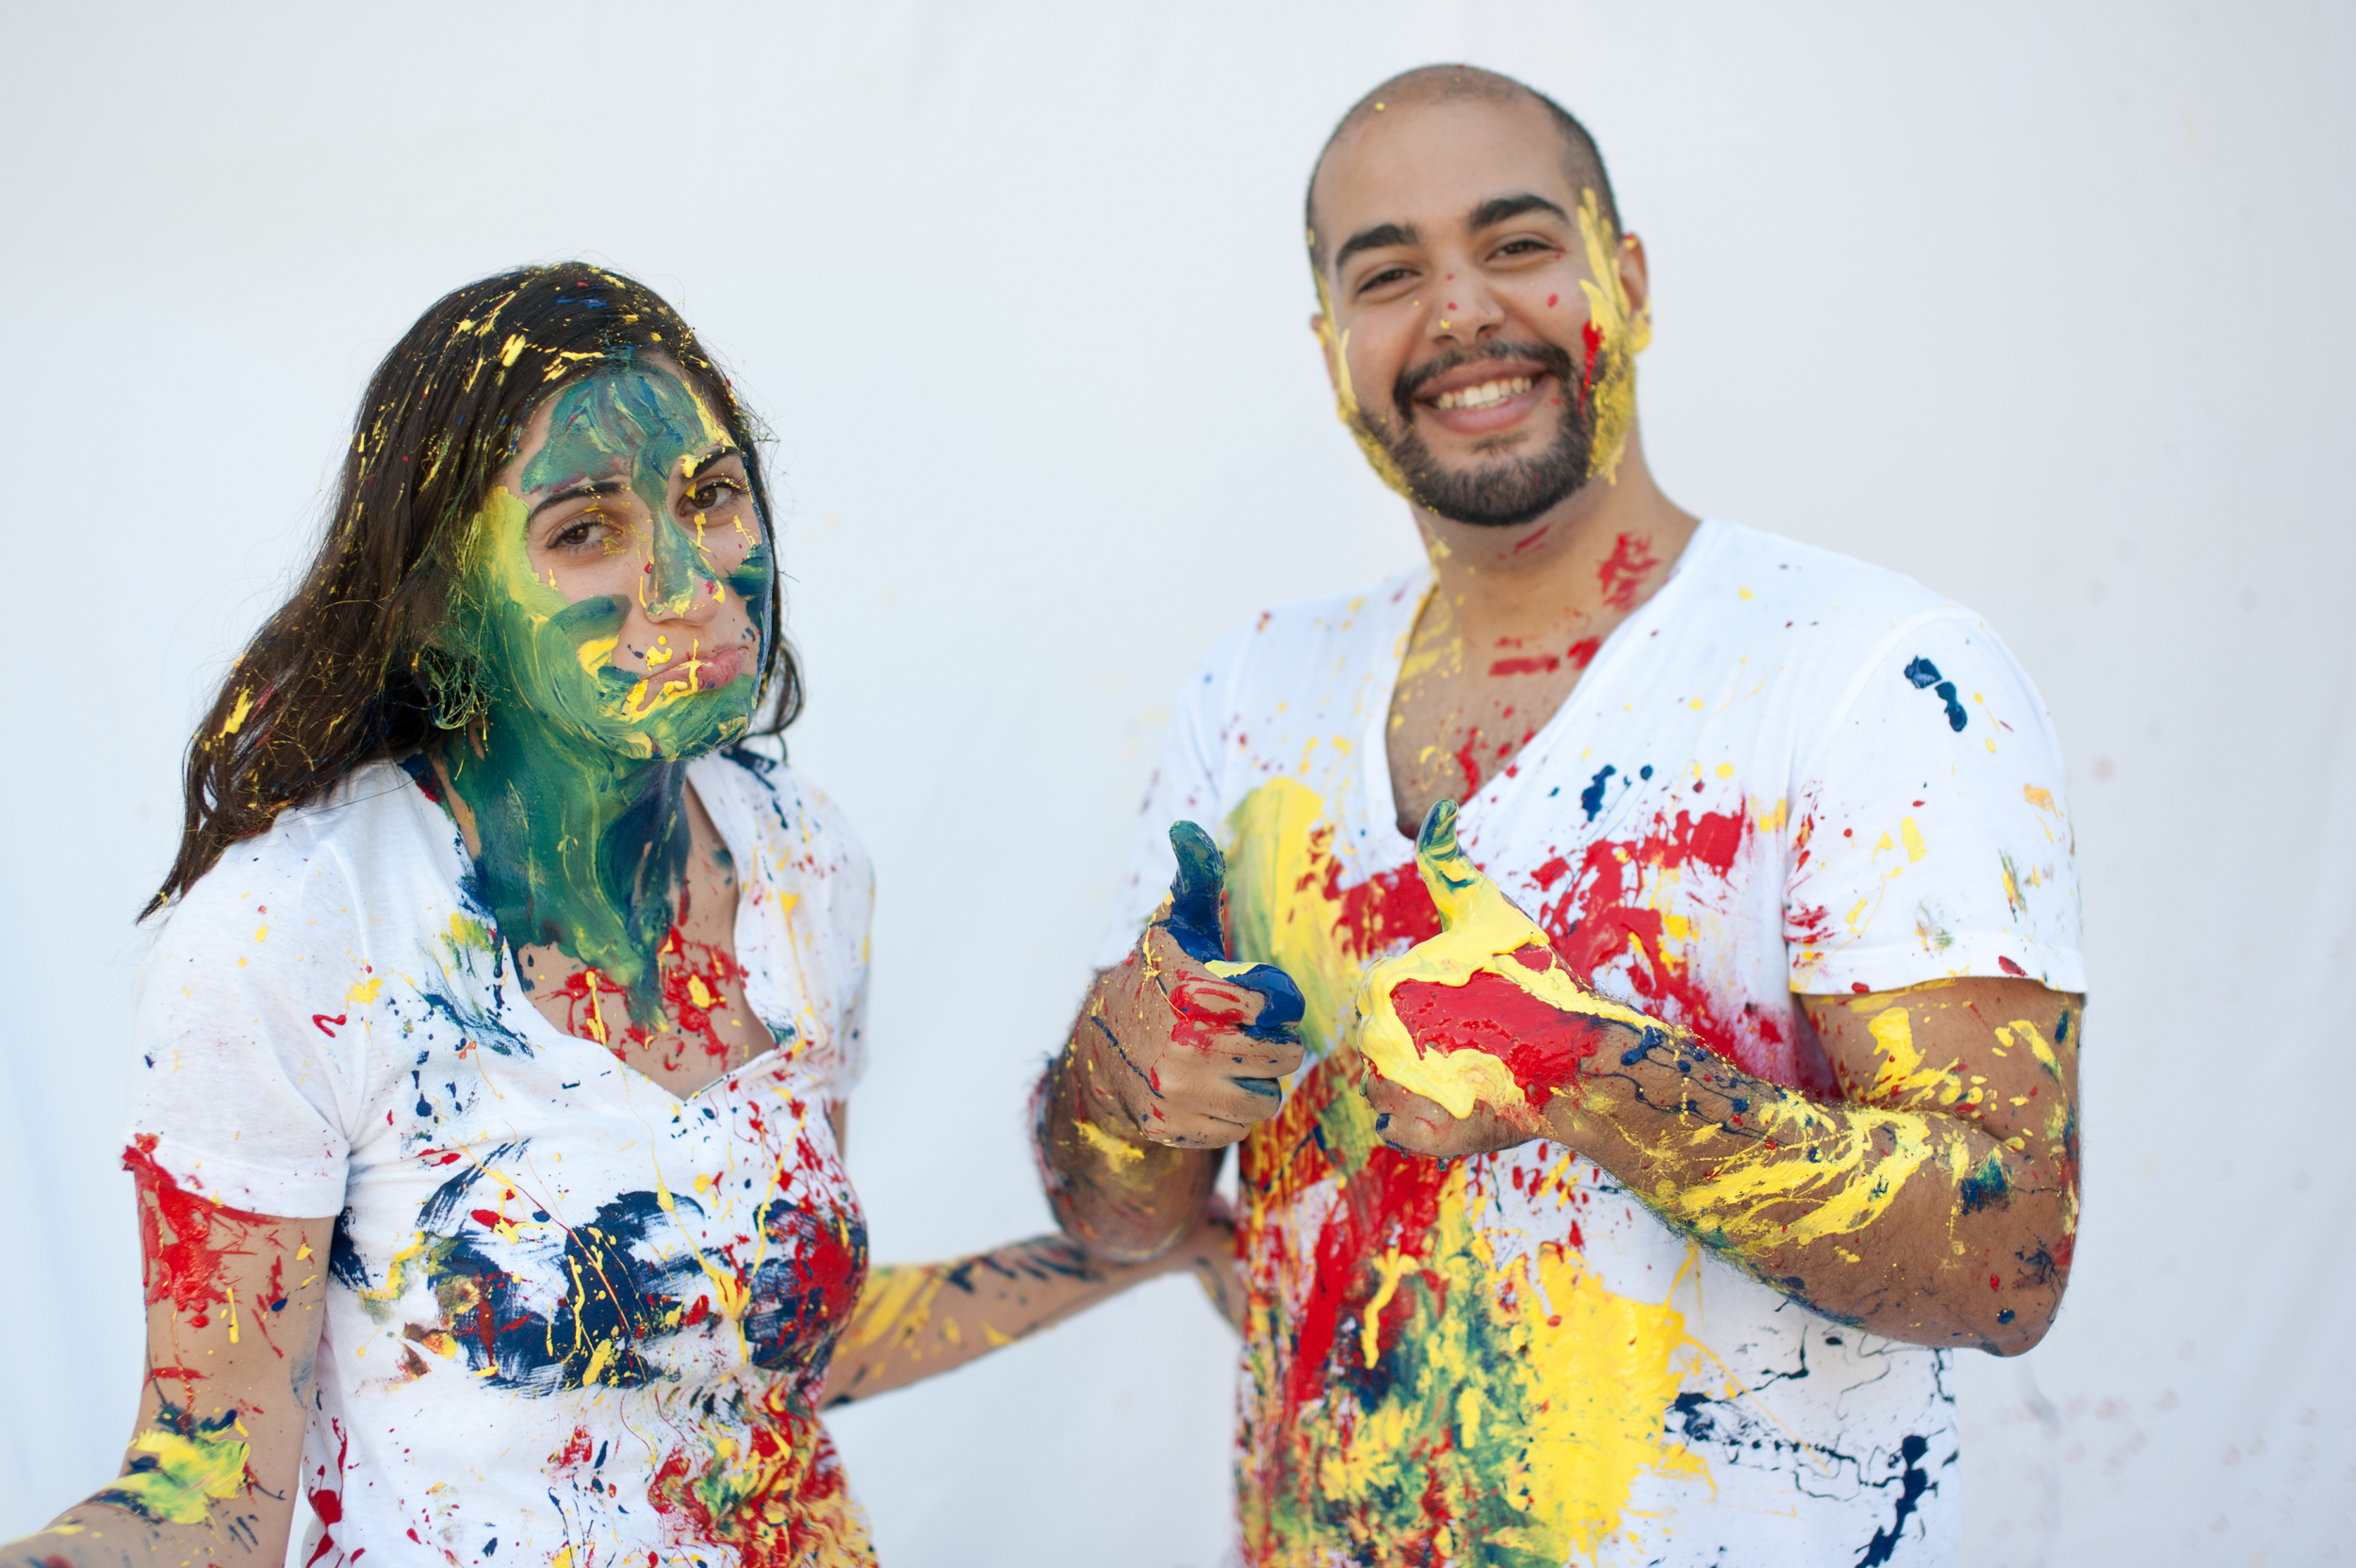 Paint War Engagement Session by Mantas Kubilinskas-15.jpg